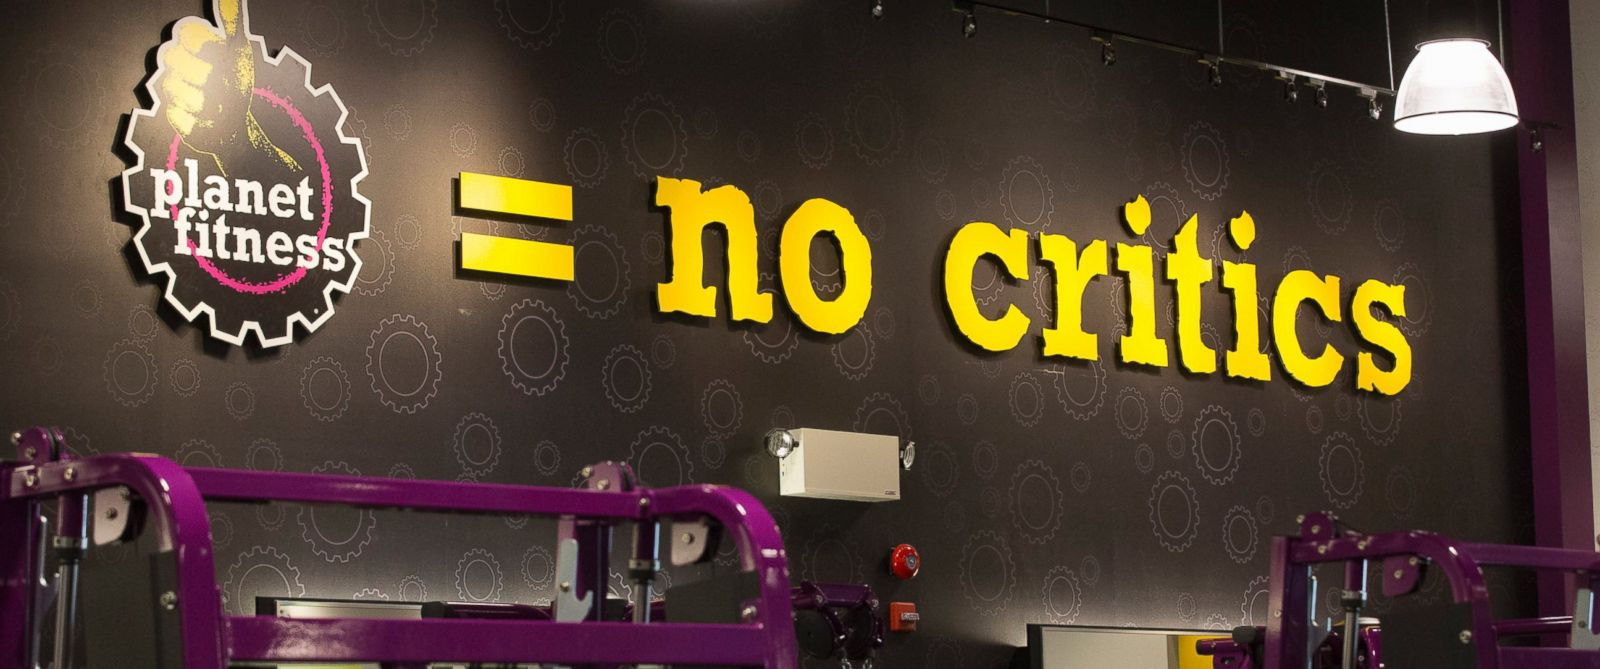 PHOTO: Planet Fitness, a low cost gym chain, is shown in this Jan. 7, 2015 file photo.